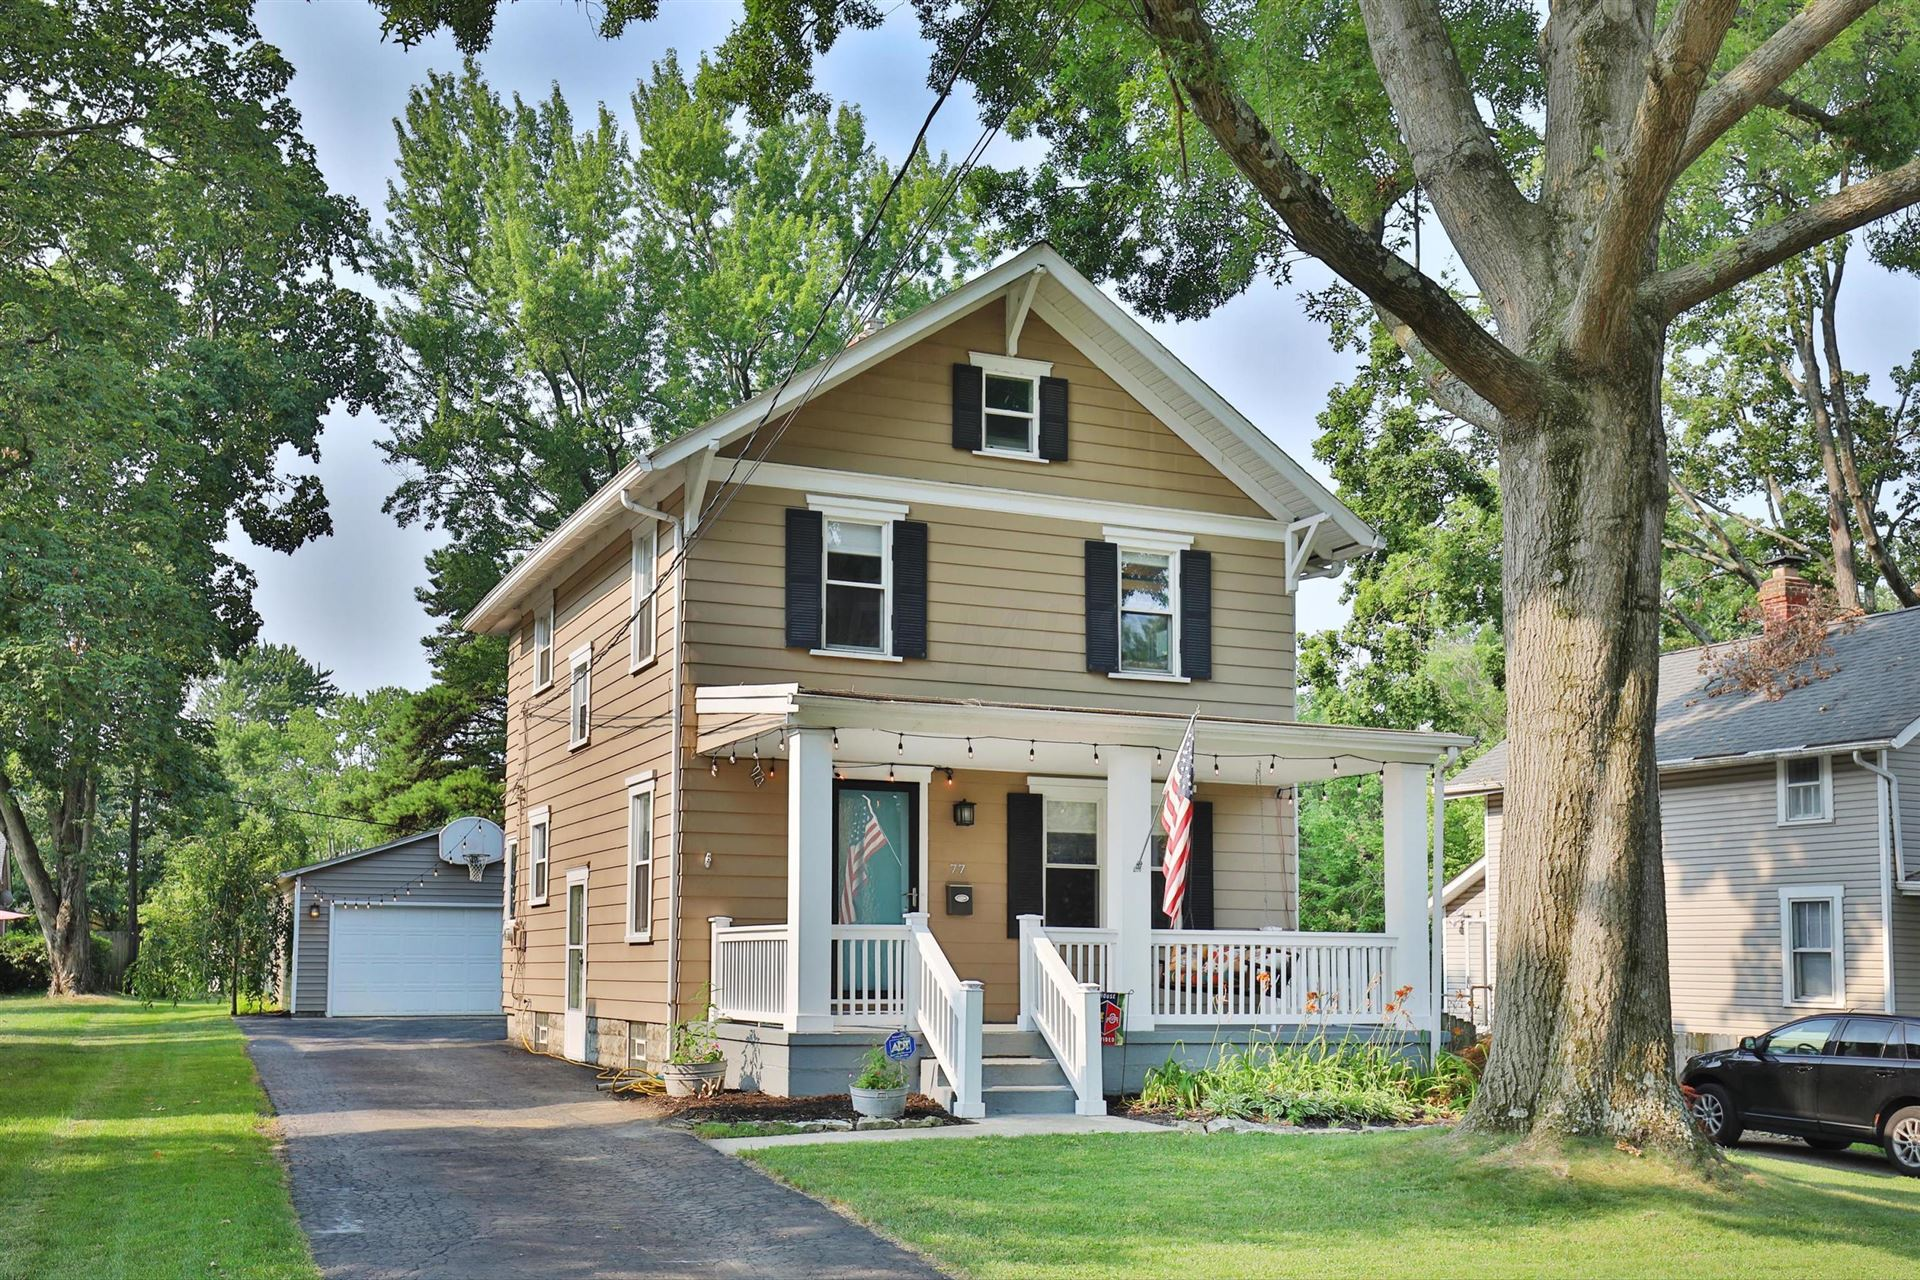 Photo of 77 Hiawatha Avenue, Westerville, OH 43081 (MLS # 221028805)